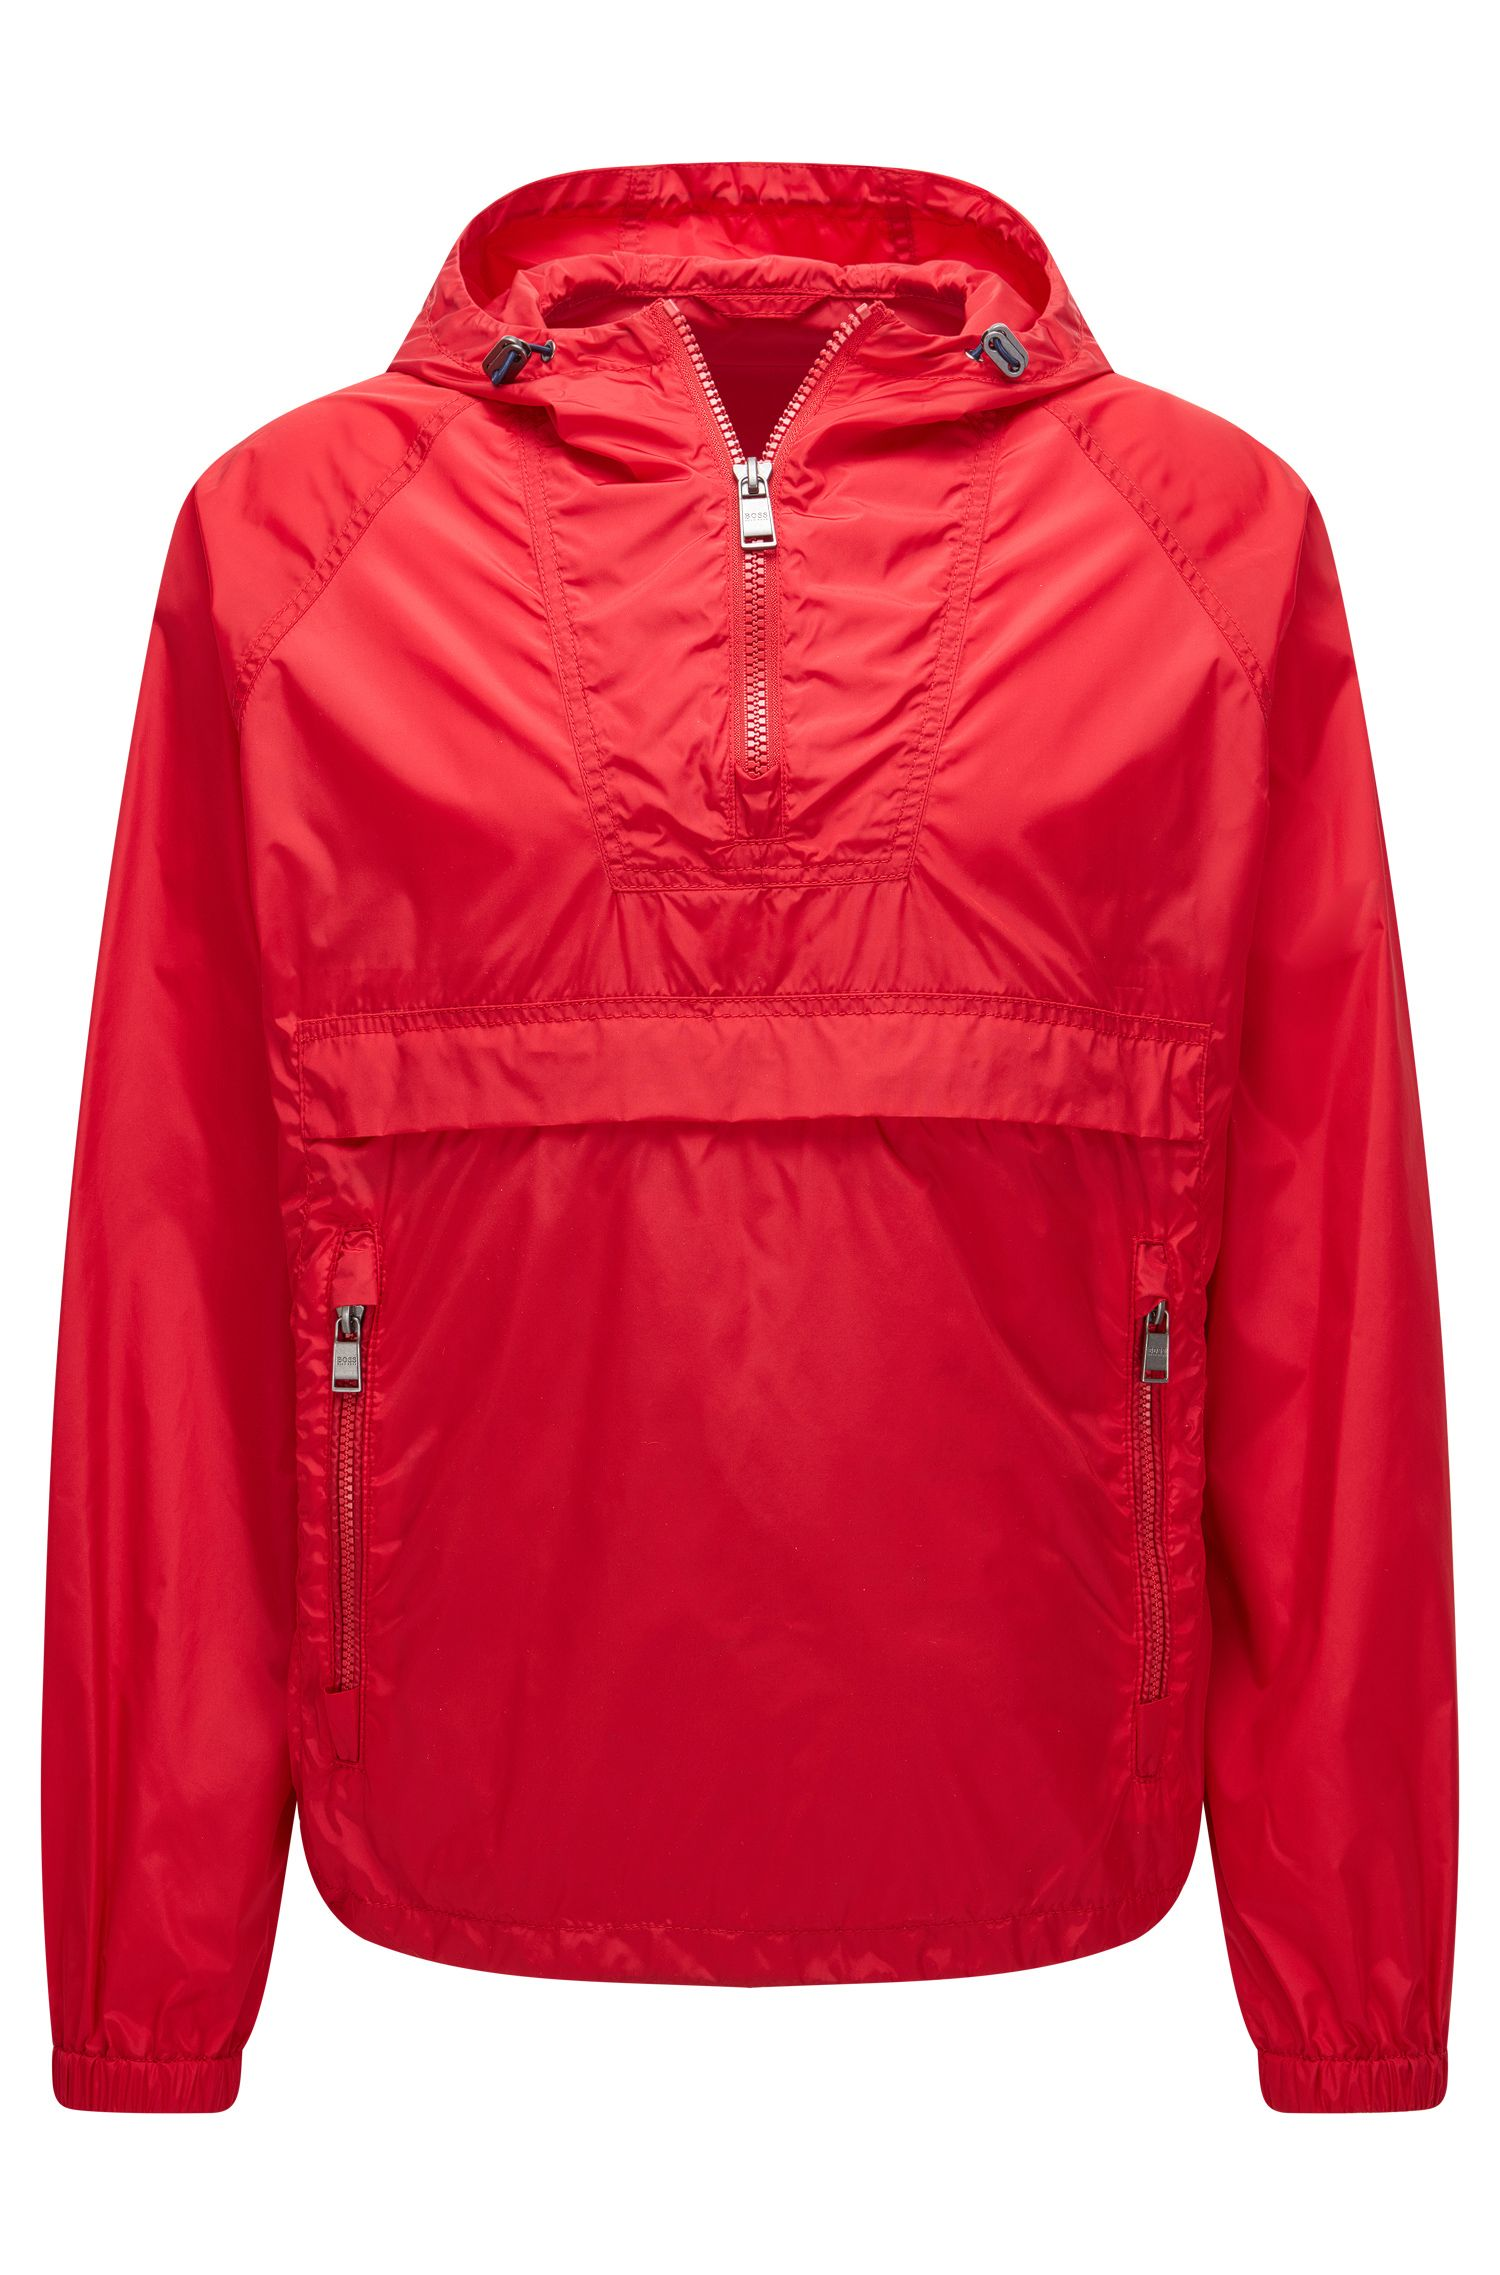 Oversized lightweight water-repellent jacket